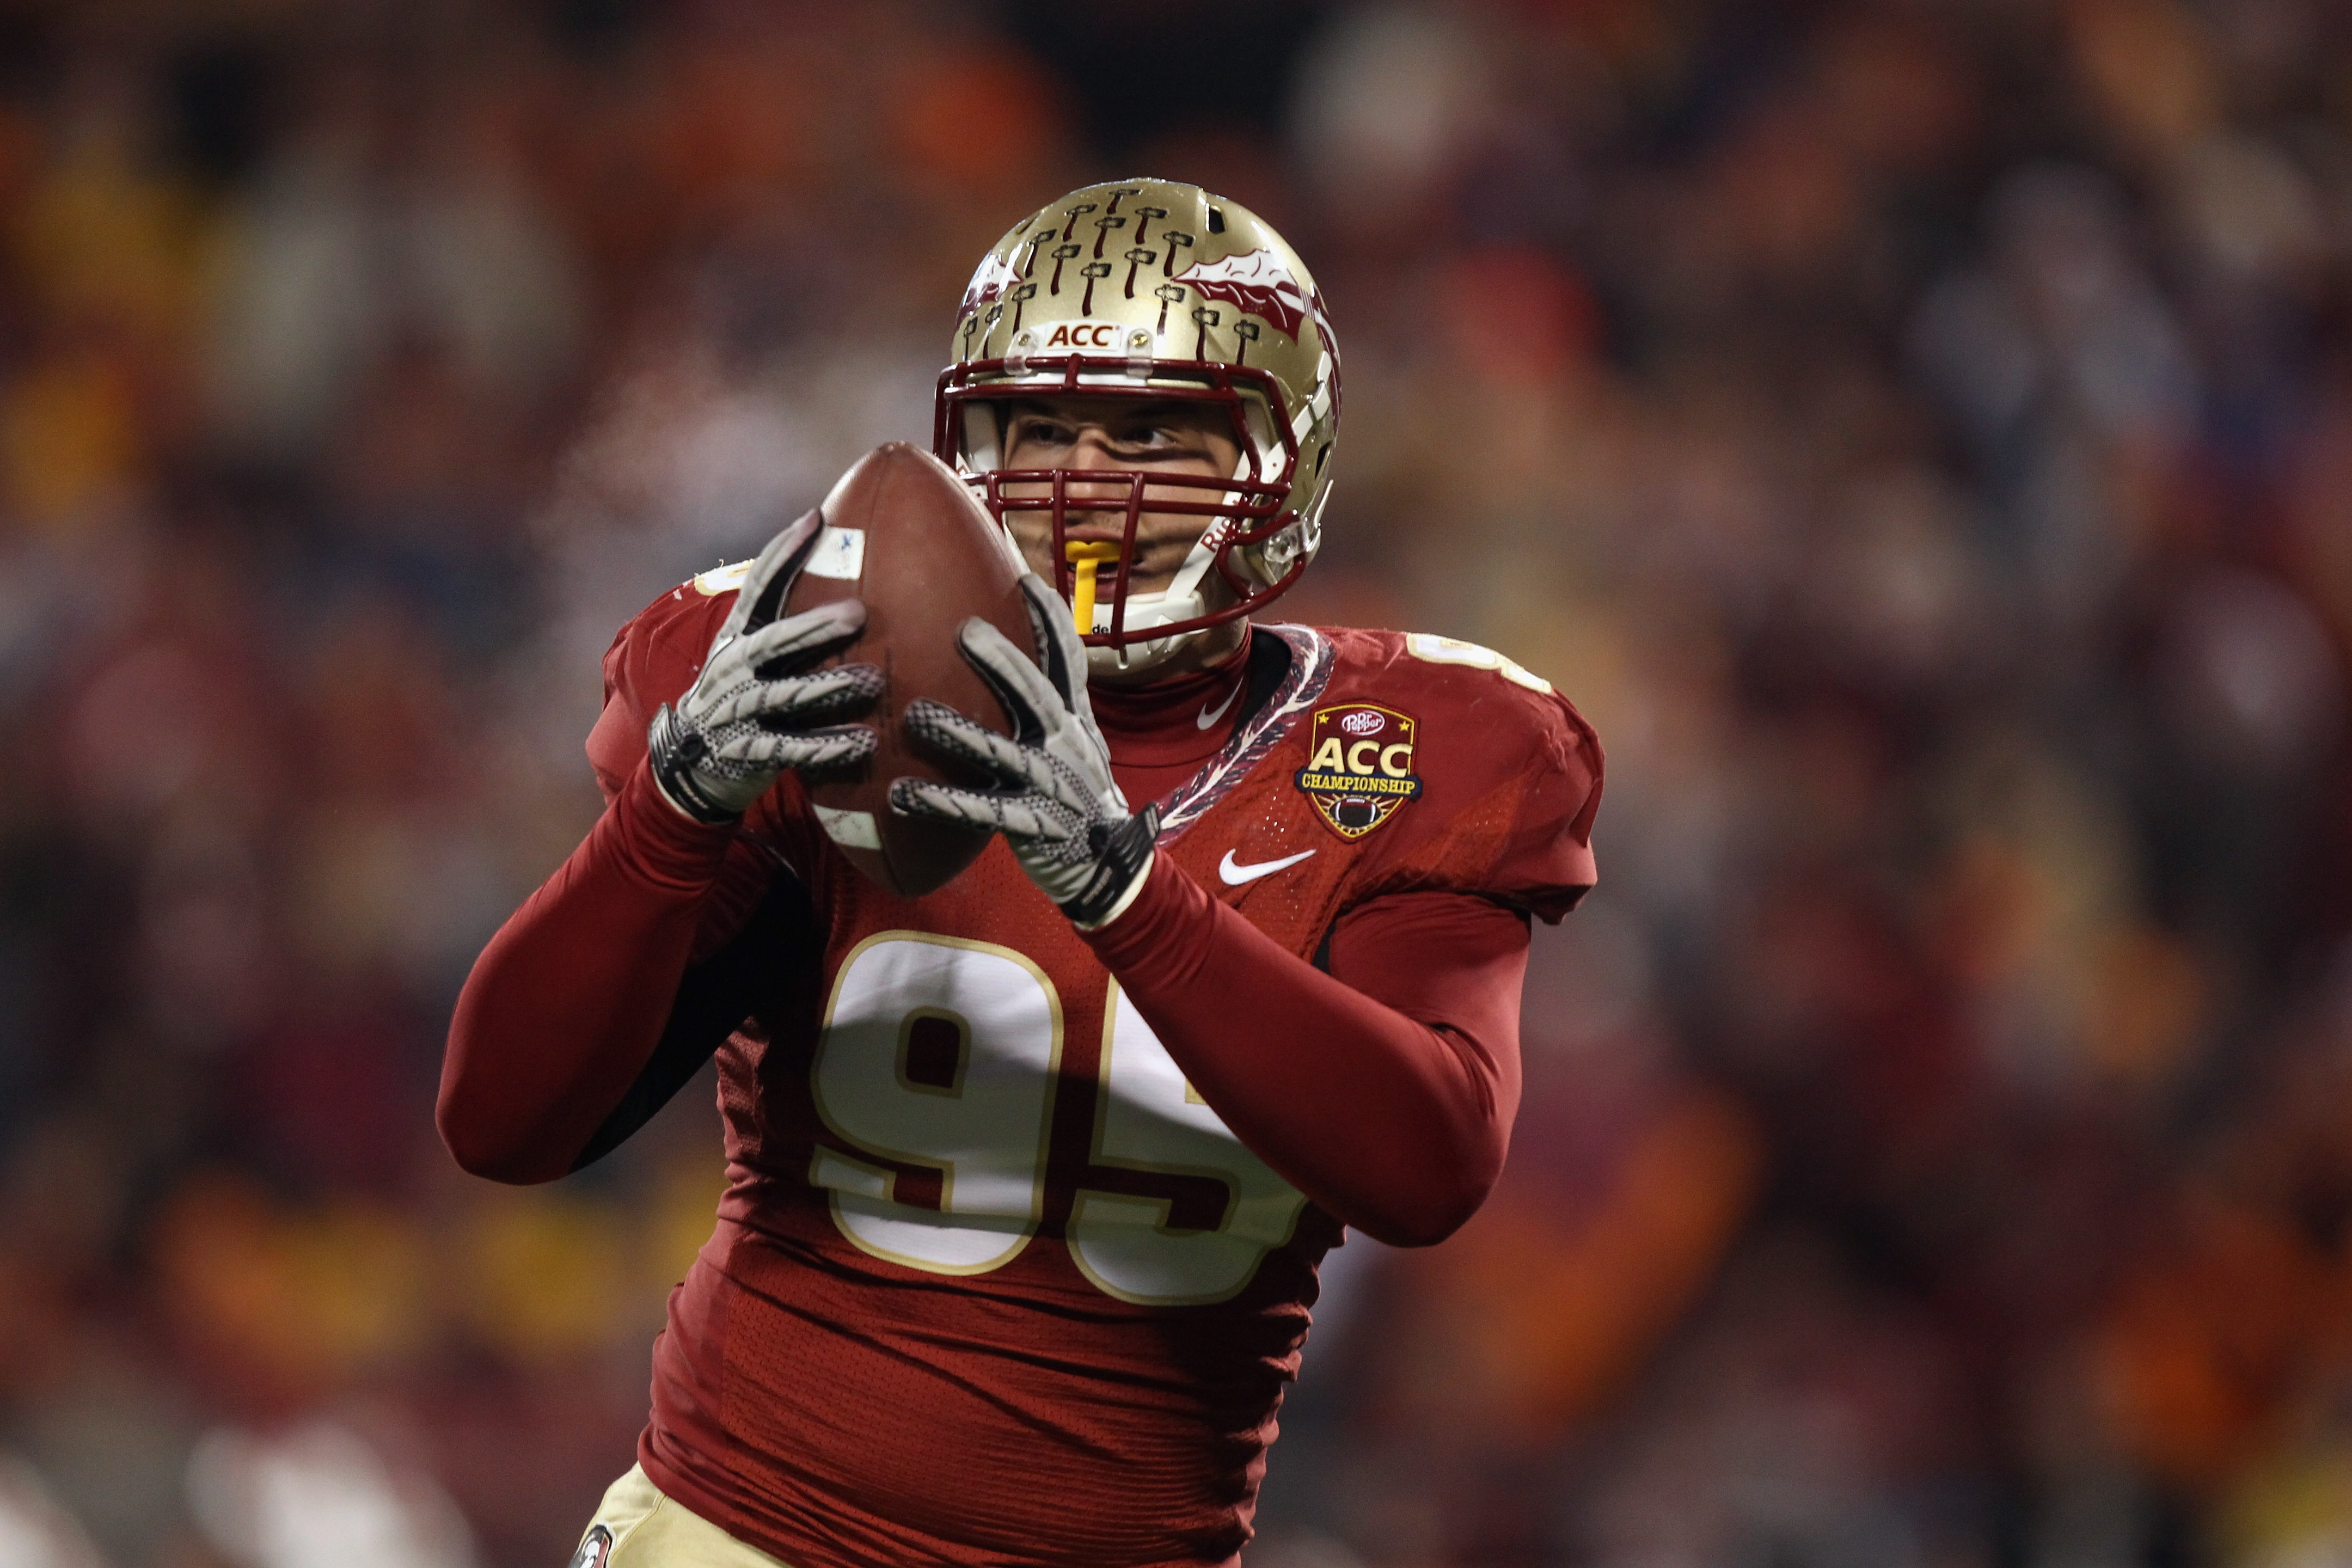 CHARLOTTE, NC - DECEMBER 04:  Bjoern Werner #95 of the Florida State Seminoles against the Virginia Tech Hokies during their game at Bank of America Stadium on December 4, 2010 in Charlotte, North Carolina.  (Photo by Streeter Lecka/Getty Images)